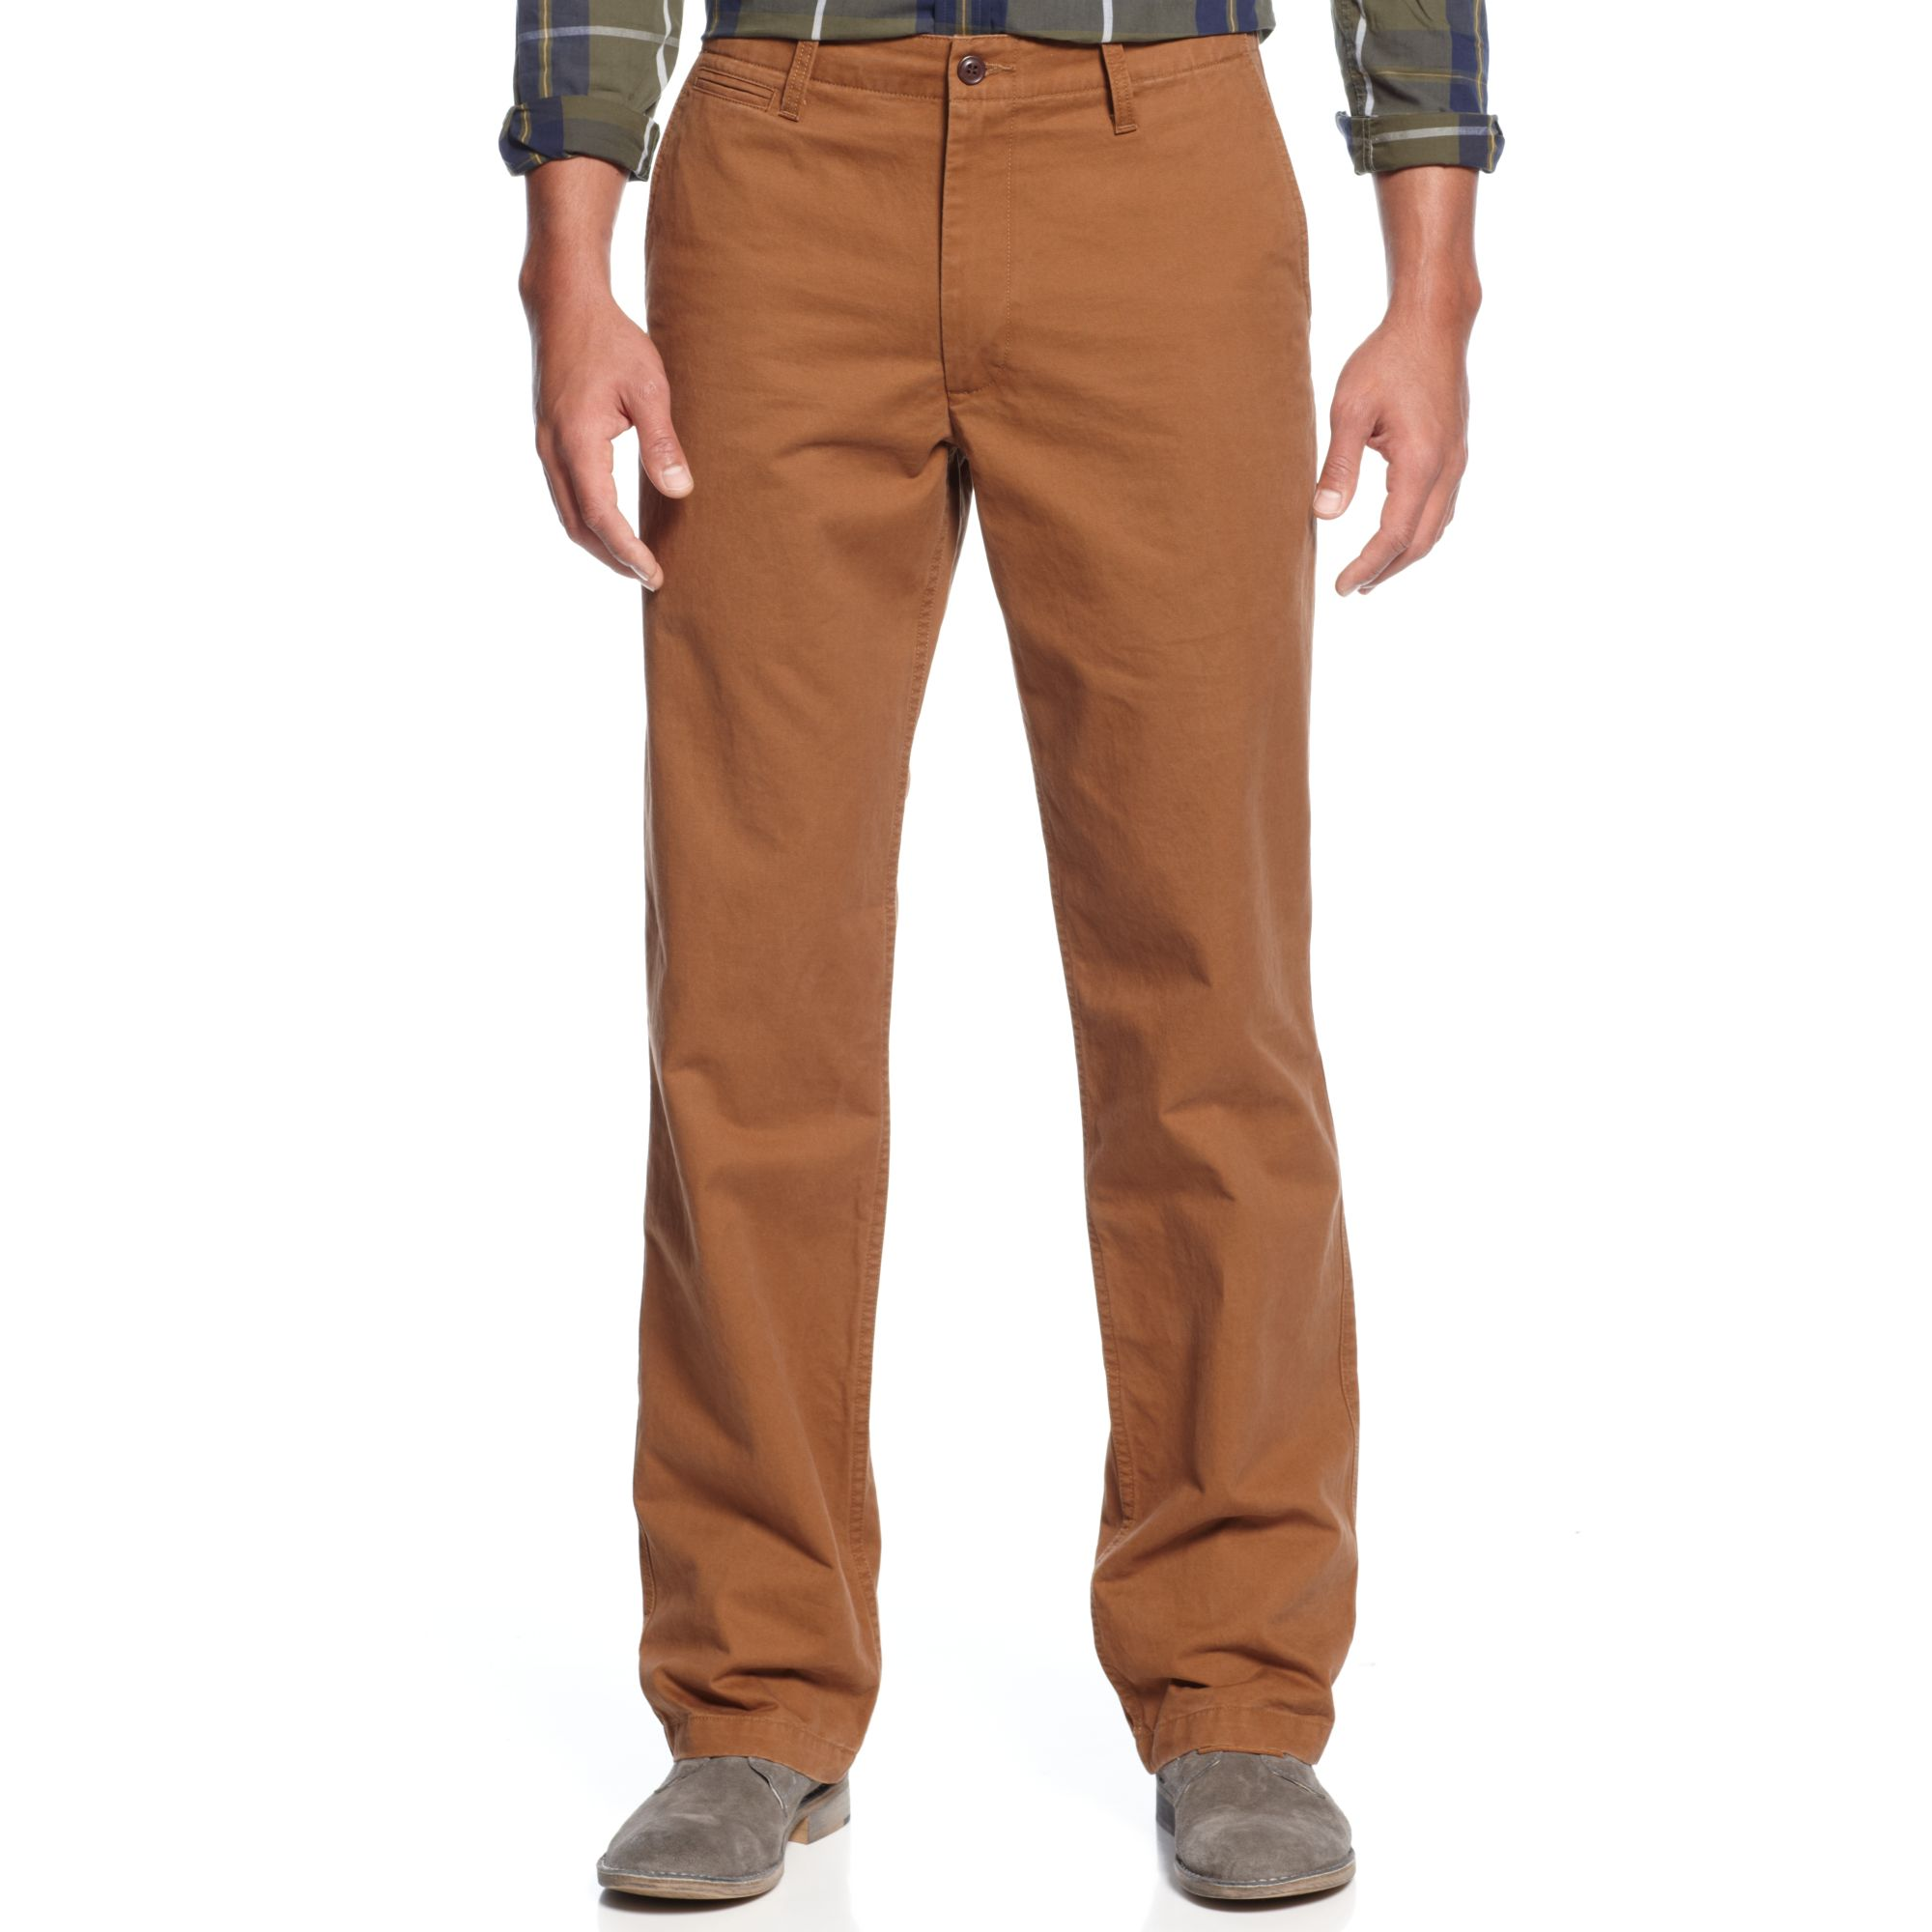 Innovative Here Are A Few Essential Items Every Corporate Wardrobe Should Contain Women  Of Khaki Pants And Button Up Shirts In Some Environments, Golf Shirts Are Acceptable Also No Jacket Is Required For Business Casual Shoes And